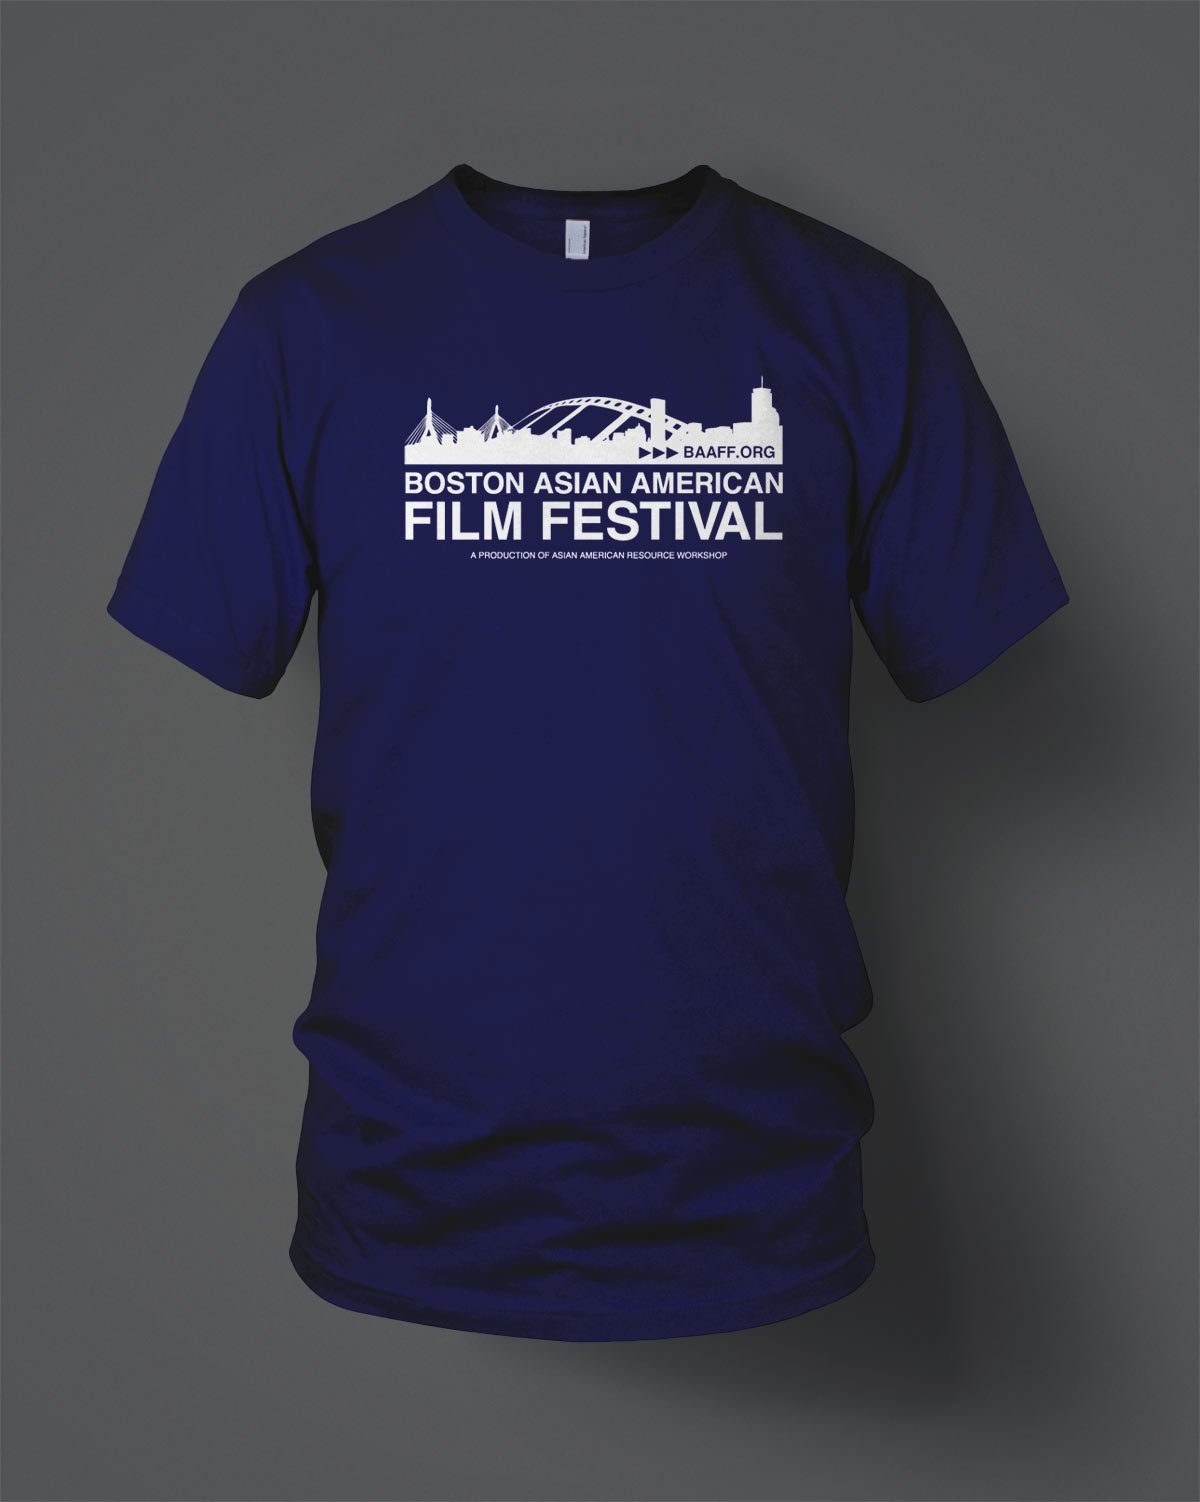 boston asian american film festival custom screen printed t-shirts